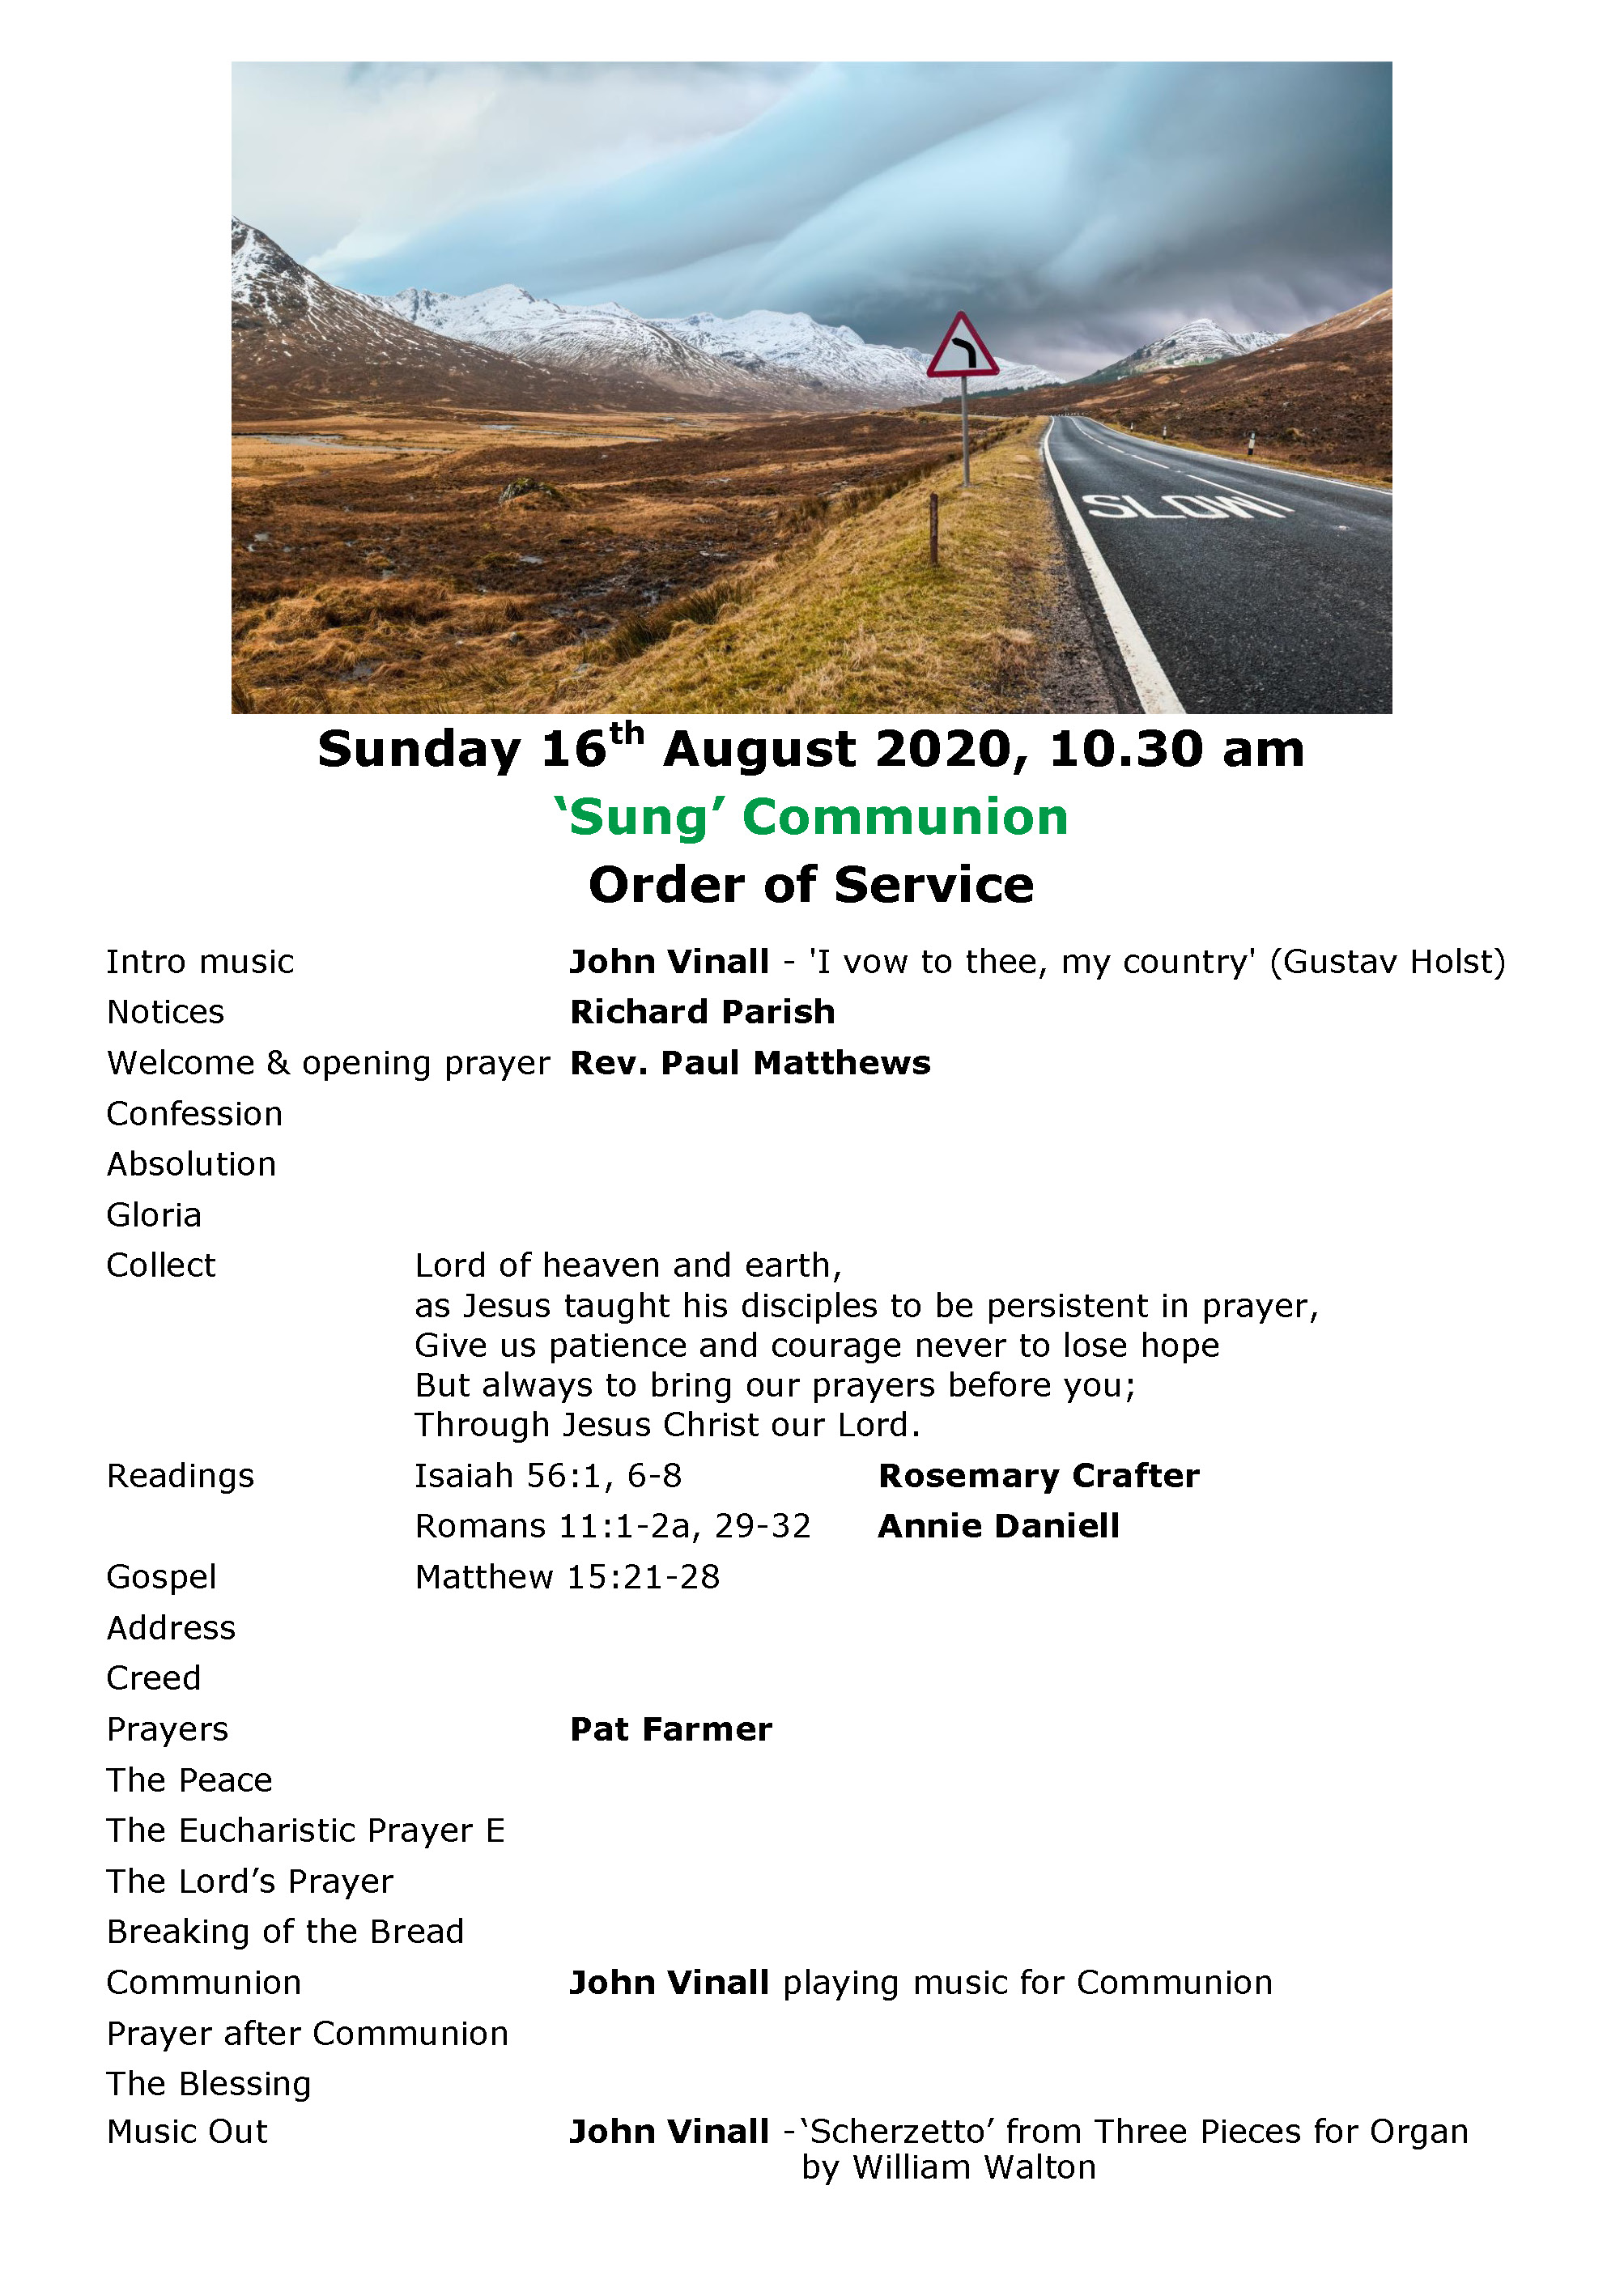 Order of Service 16th August 2020